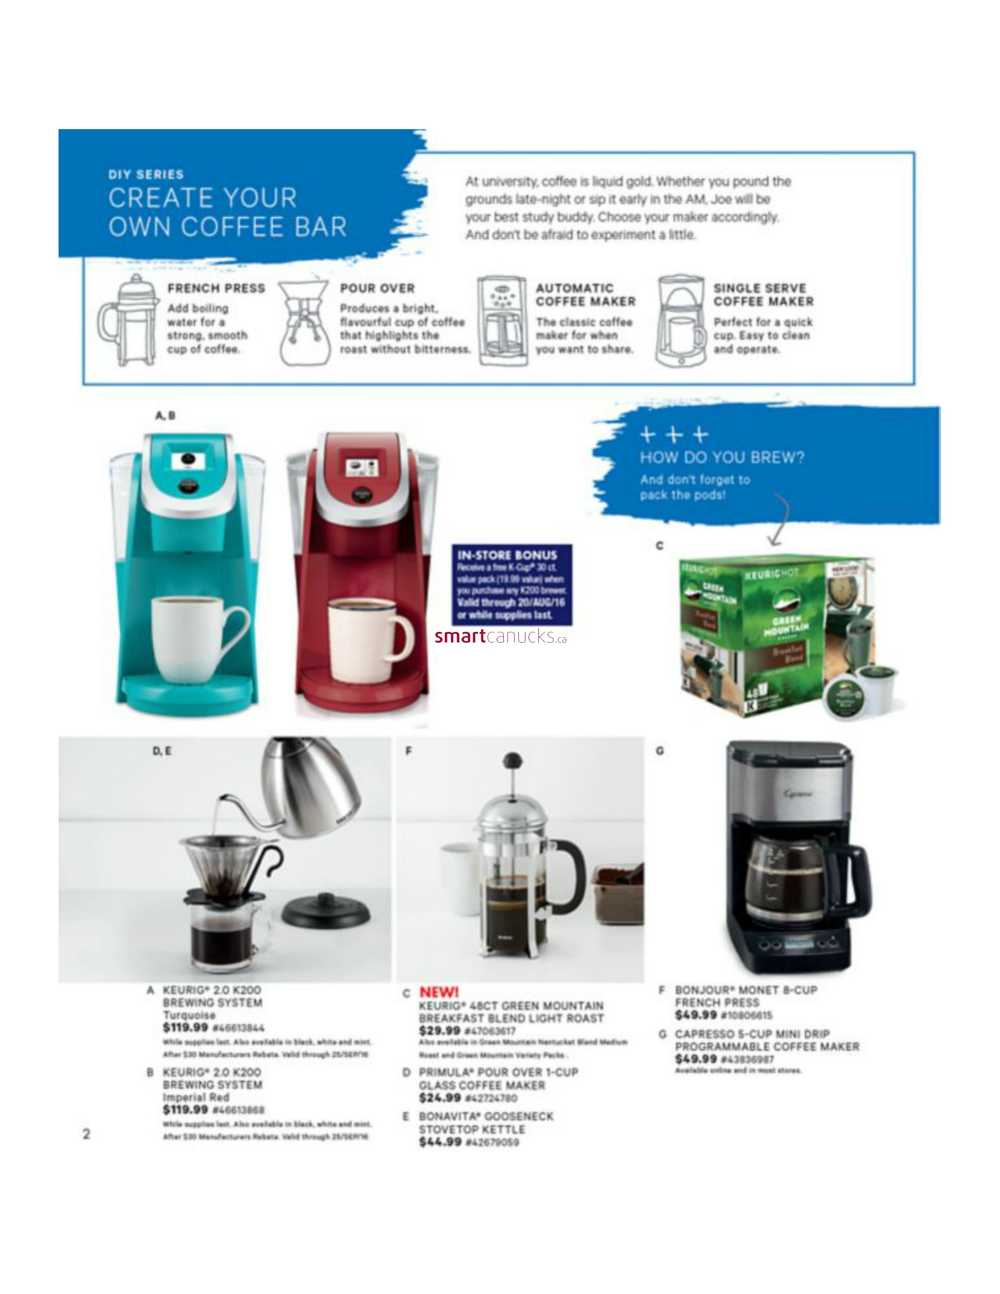 Bed bath beyond french press - Bed Bath Beyond French Press 39